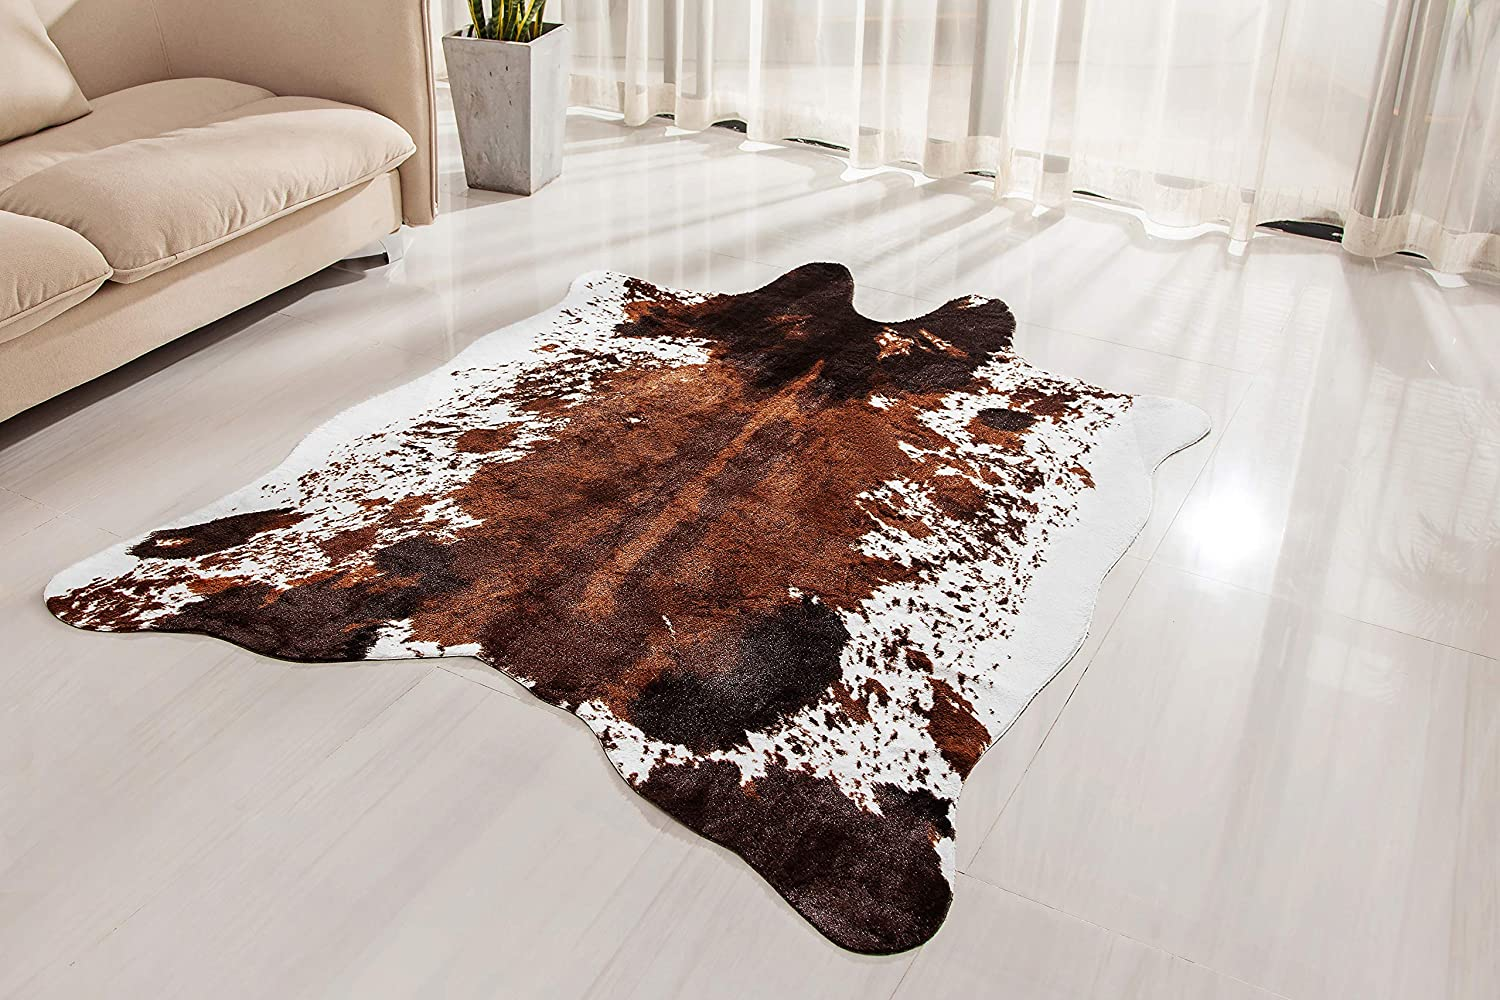 NativeSkins Faux Max 76% OFF Cowhide Rug Large 4.6ft Time sale Cow x A - Print 6.6ft